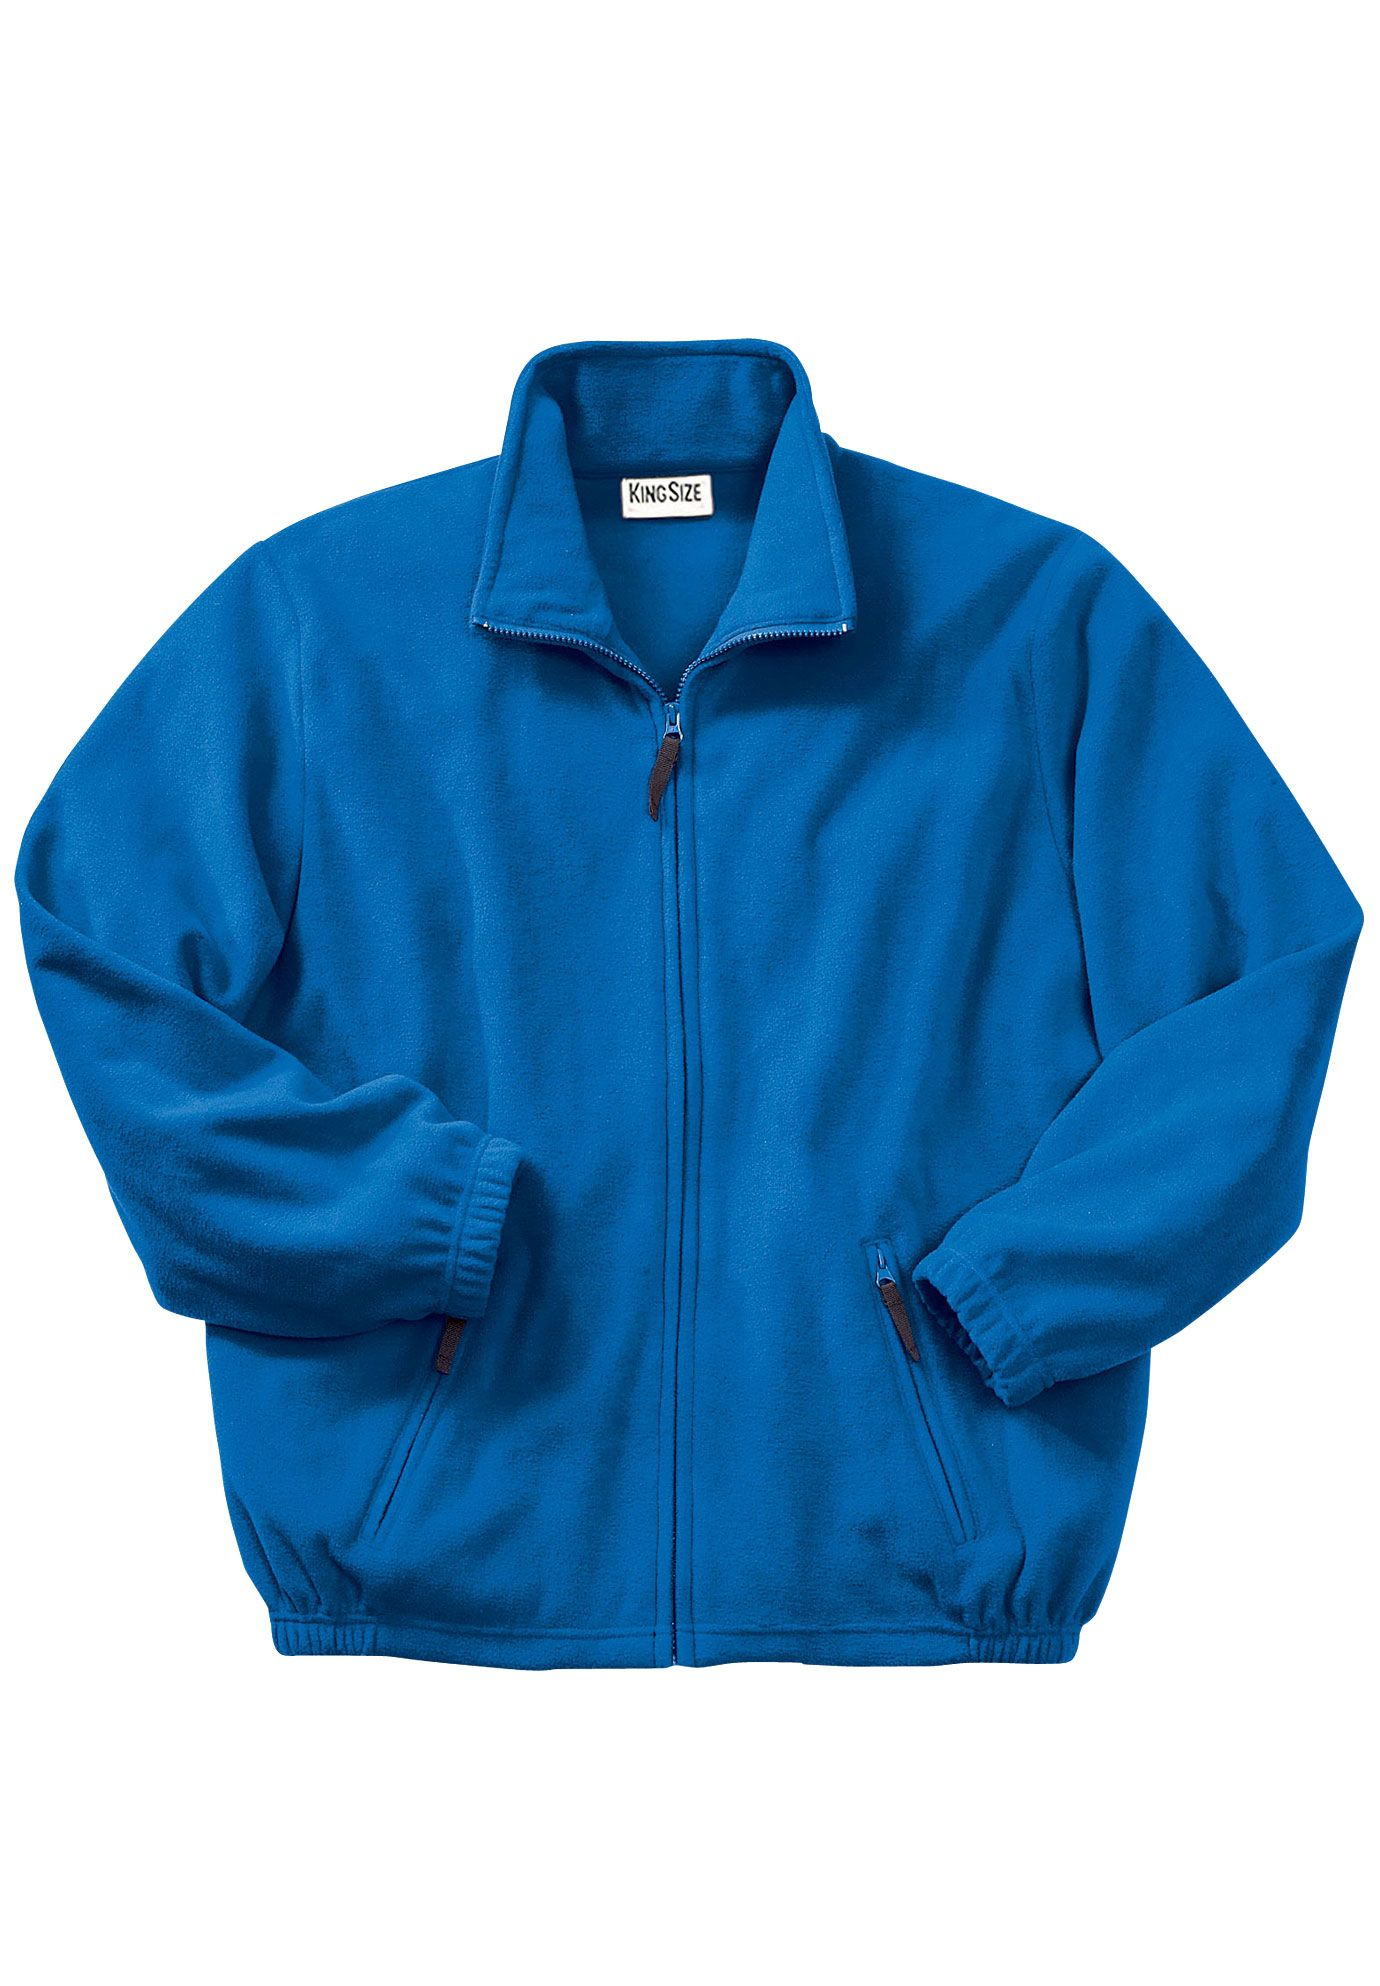 Big and Tall Clothes for Men | KingSize Direct 4xt or 5x for ML ...